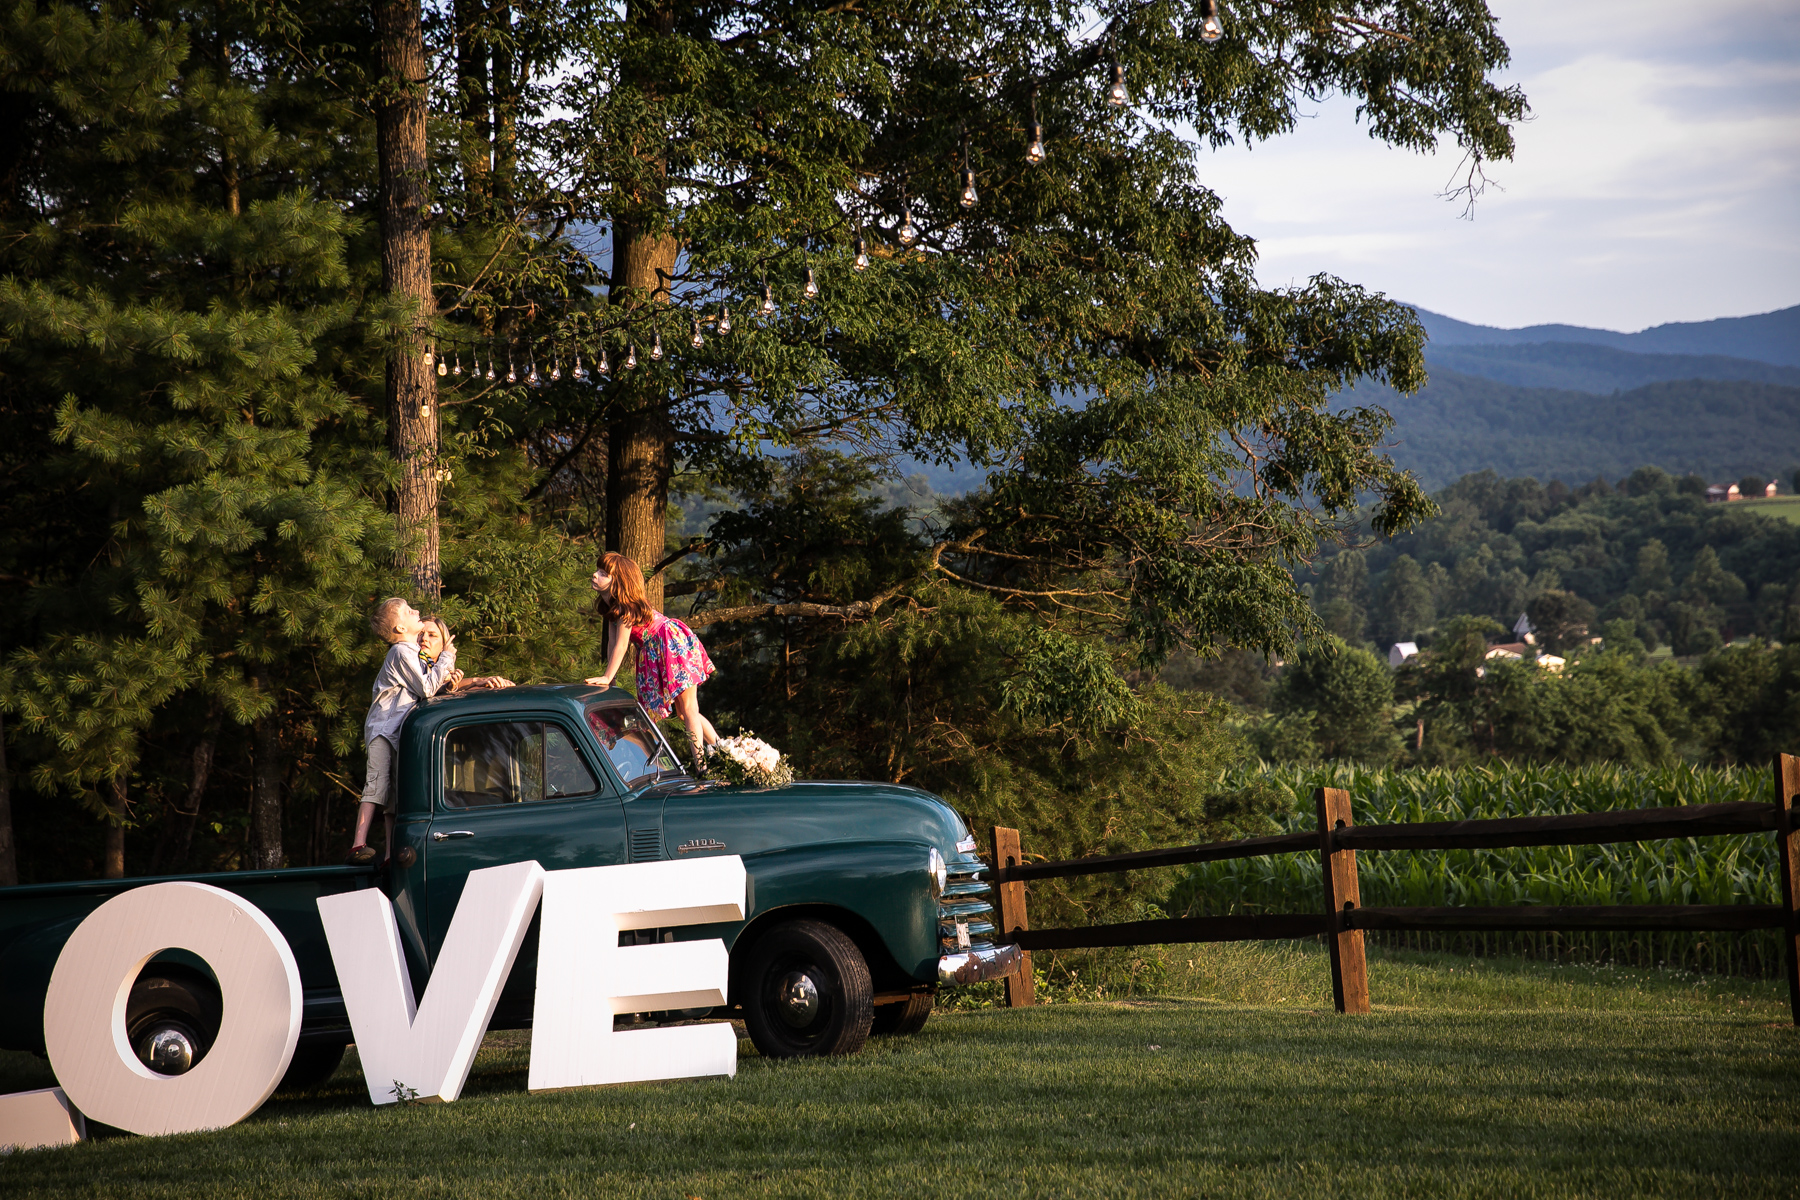 Wedding couple in old truck in field, Shenandoah Virginia